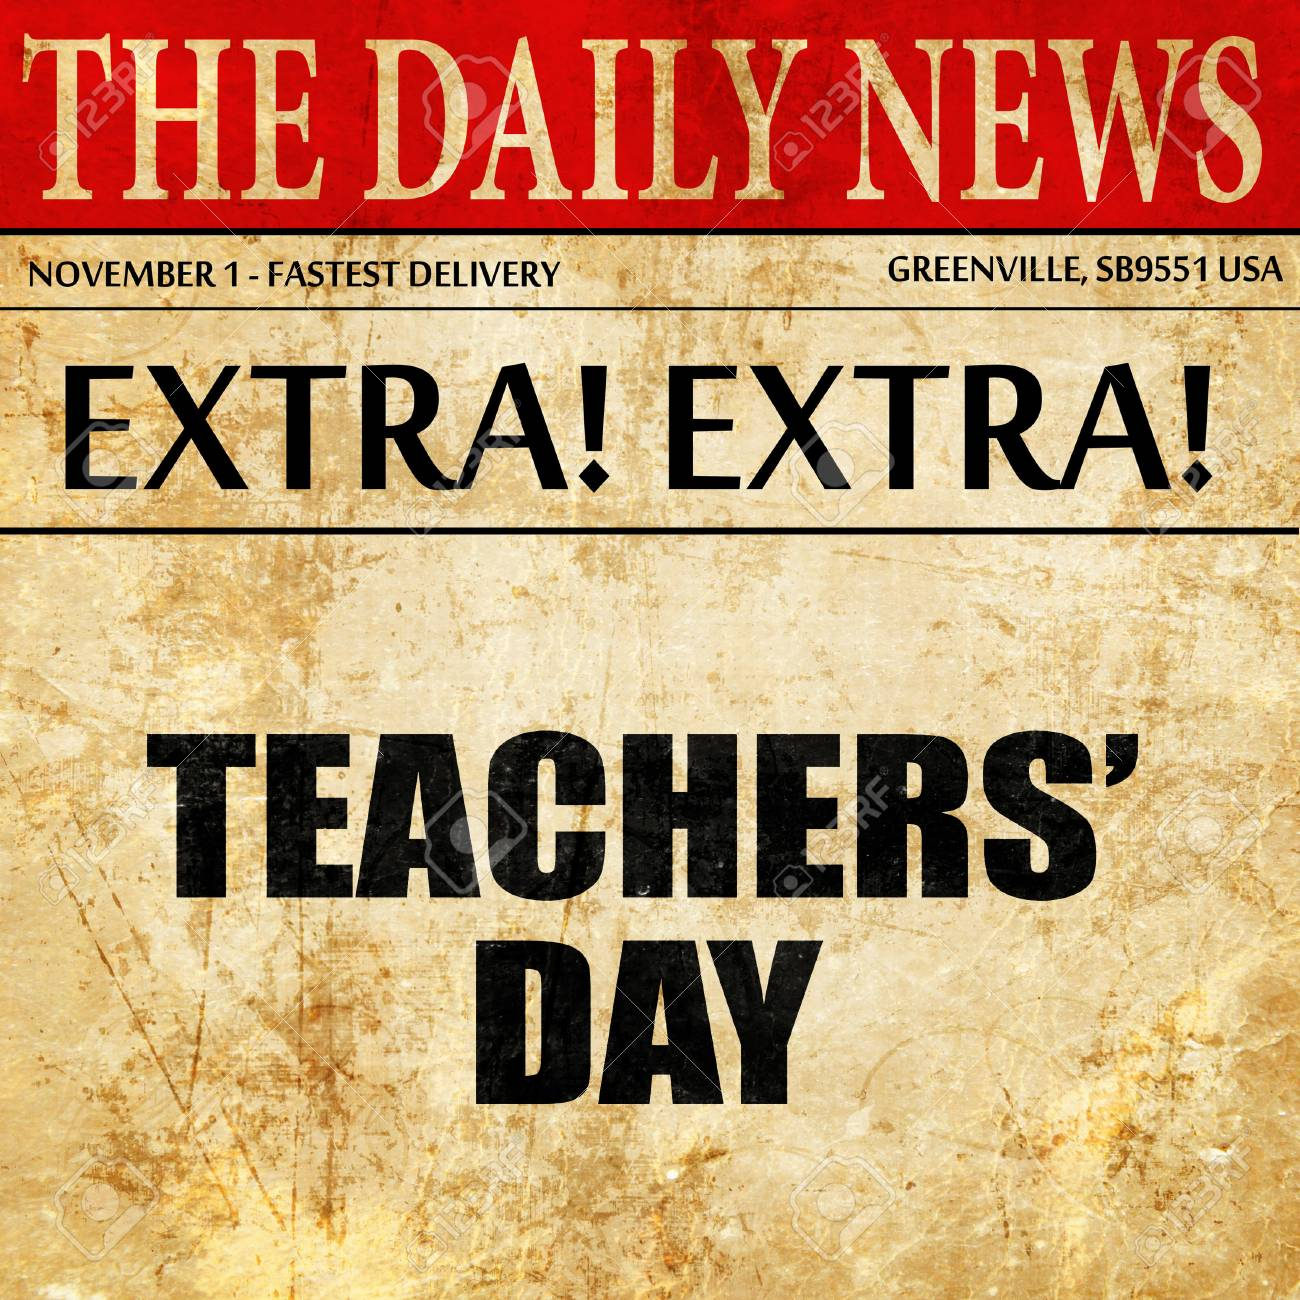 article on teachers day